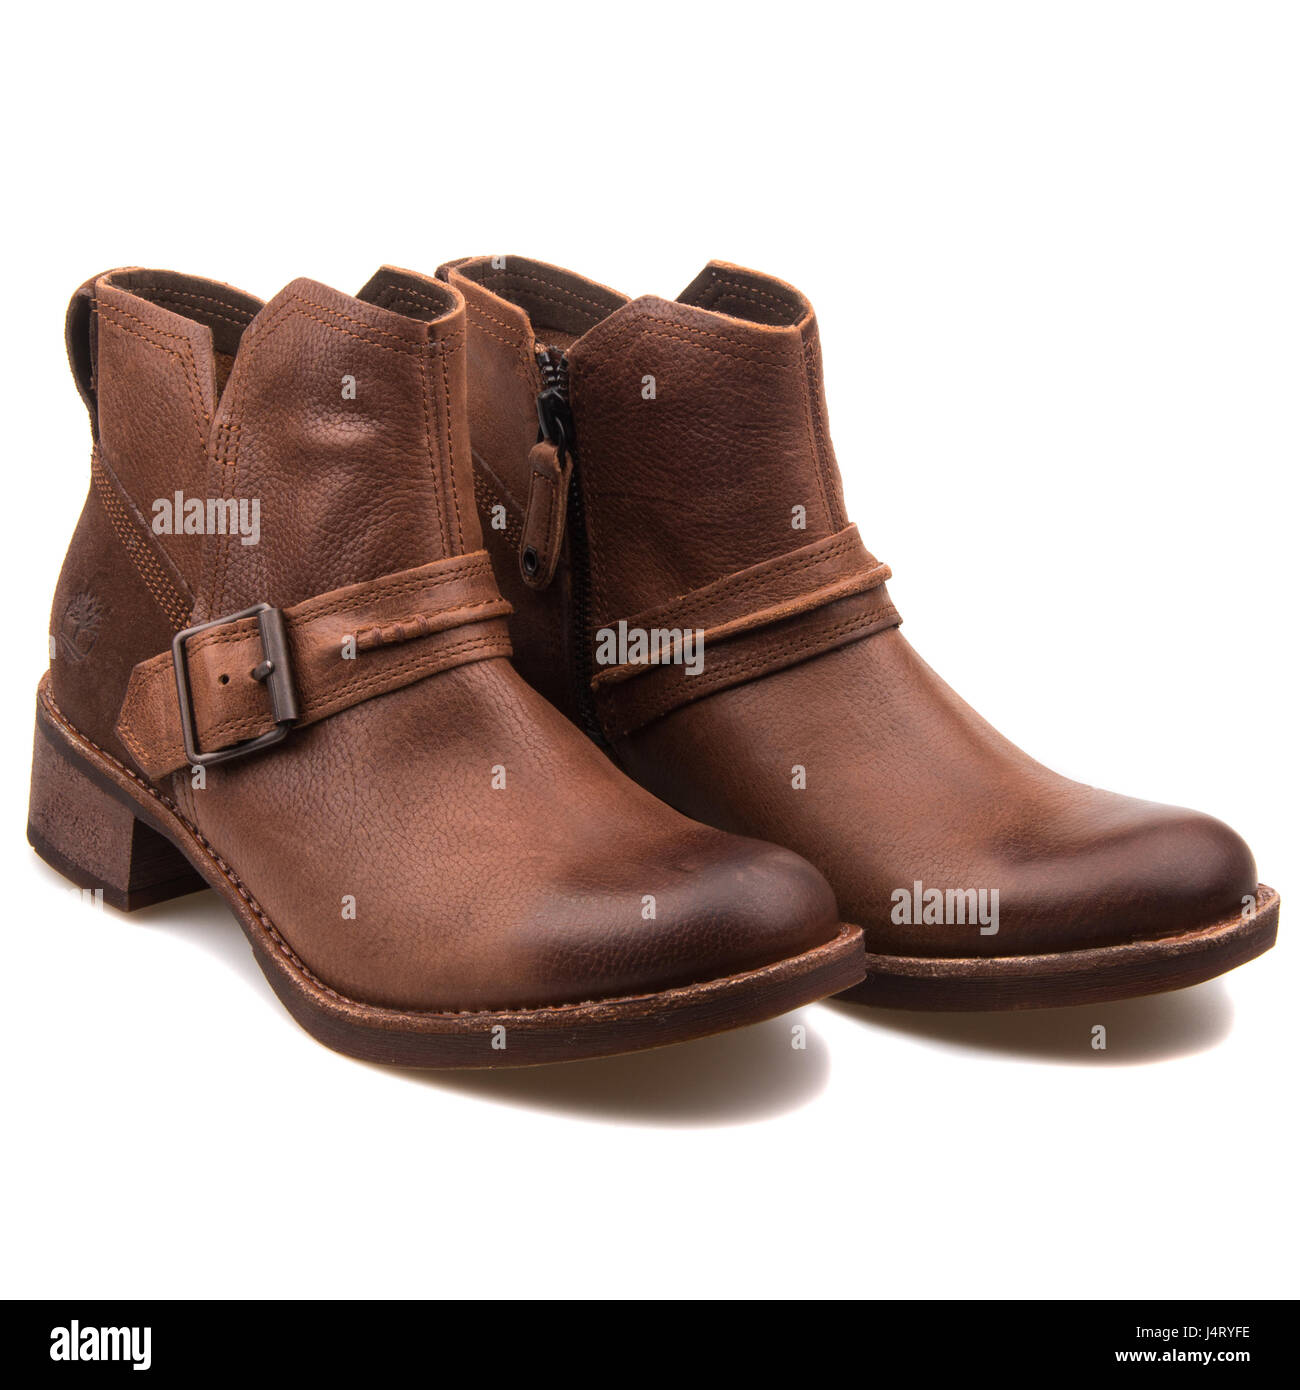 6621f4105b Timberland Whittemore Chelsea Dark Brown Women's Leather Boots - A12JL -  Stock Image